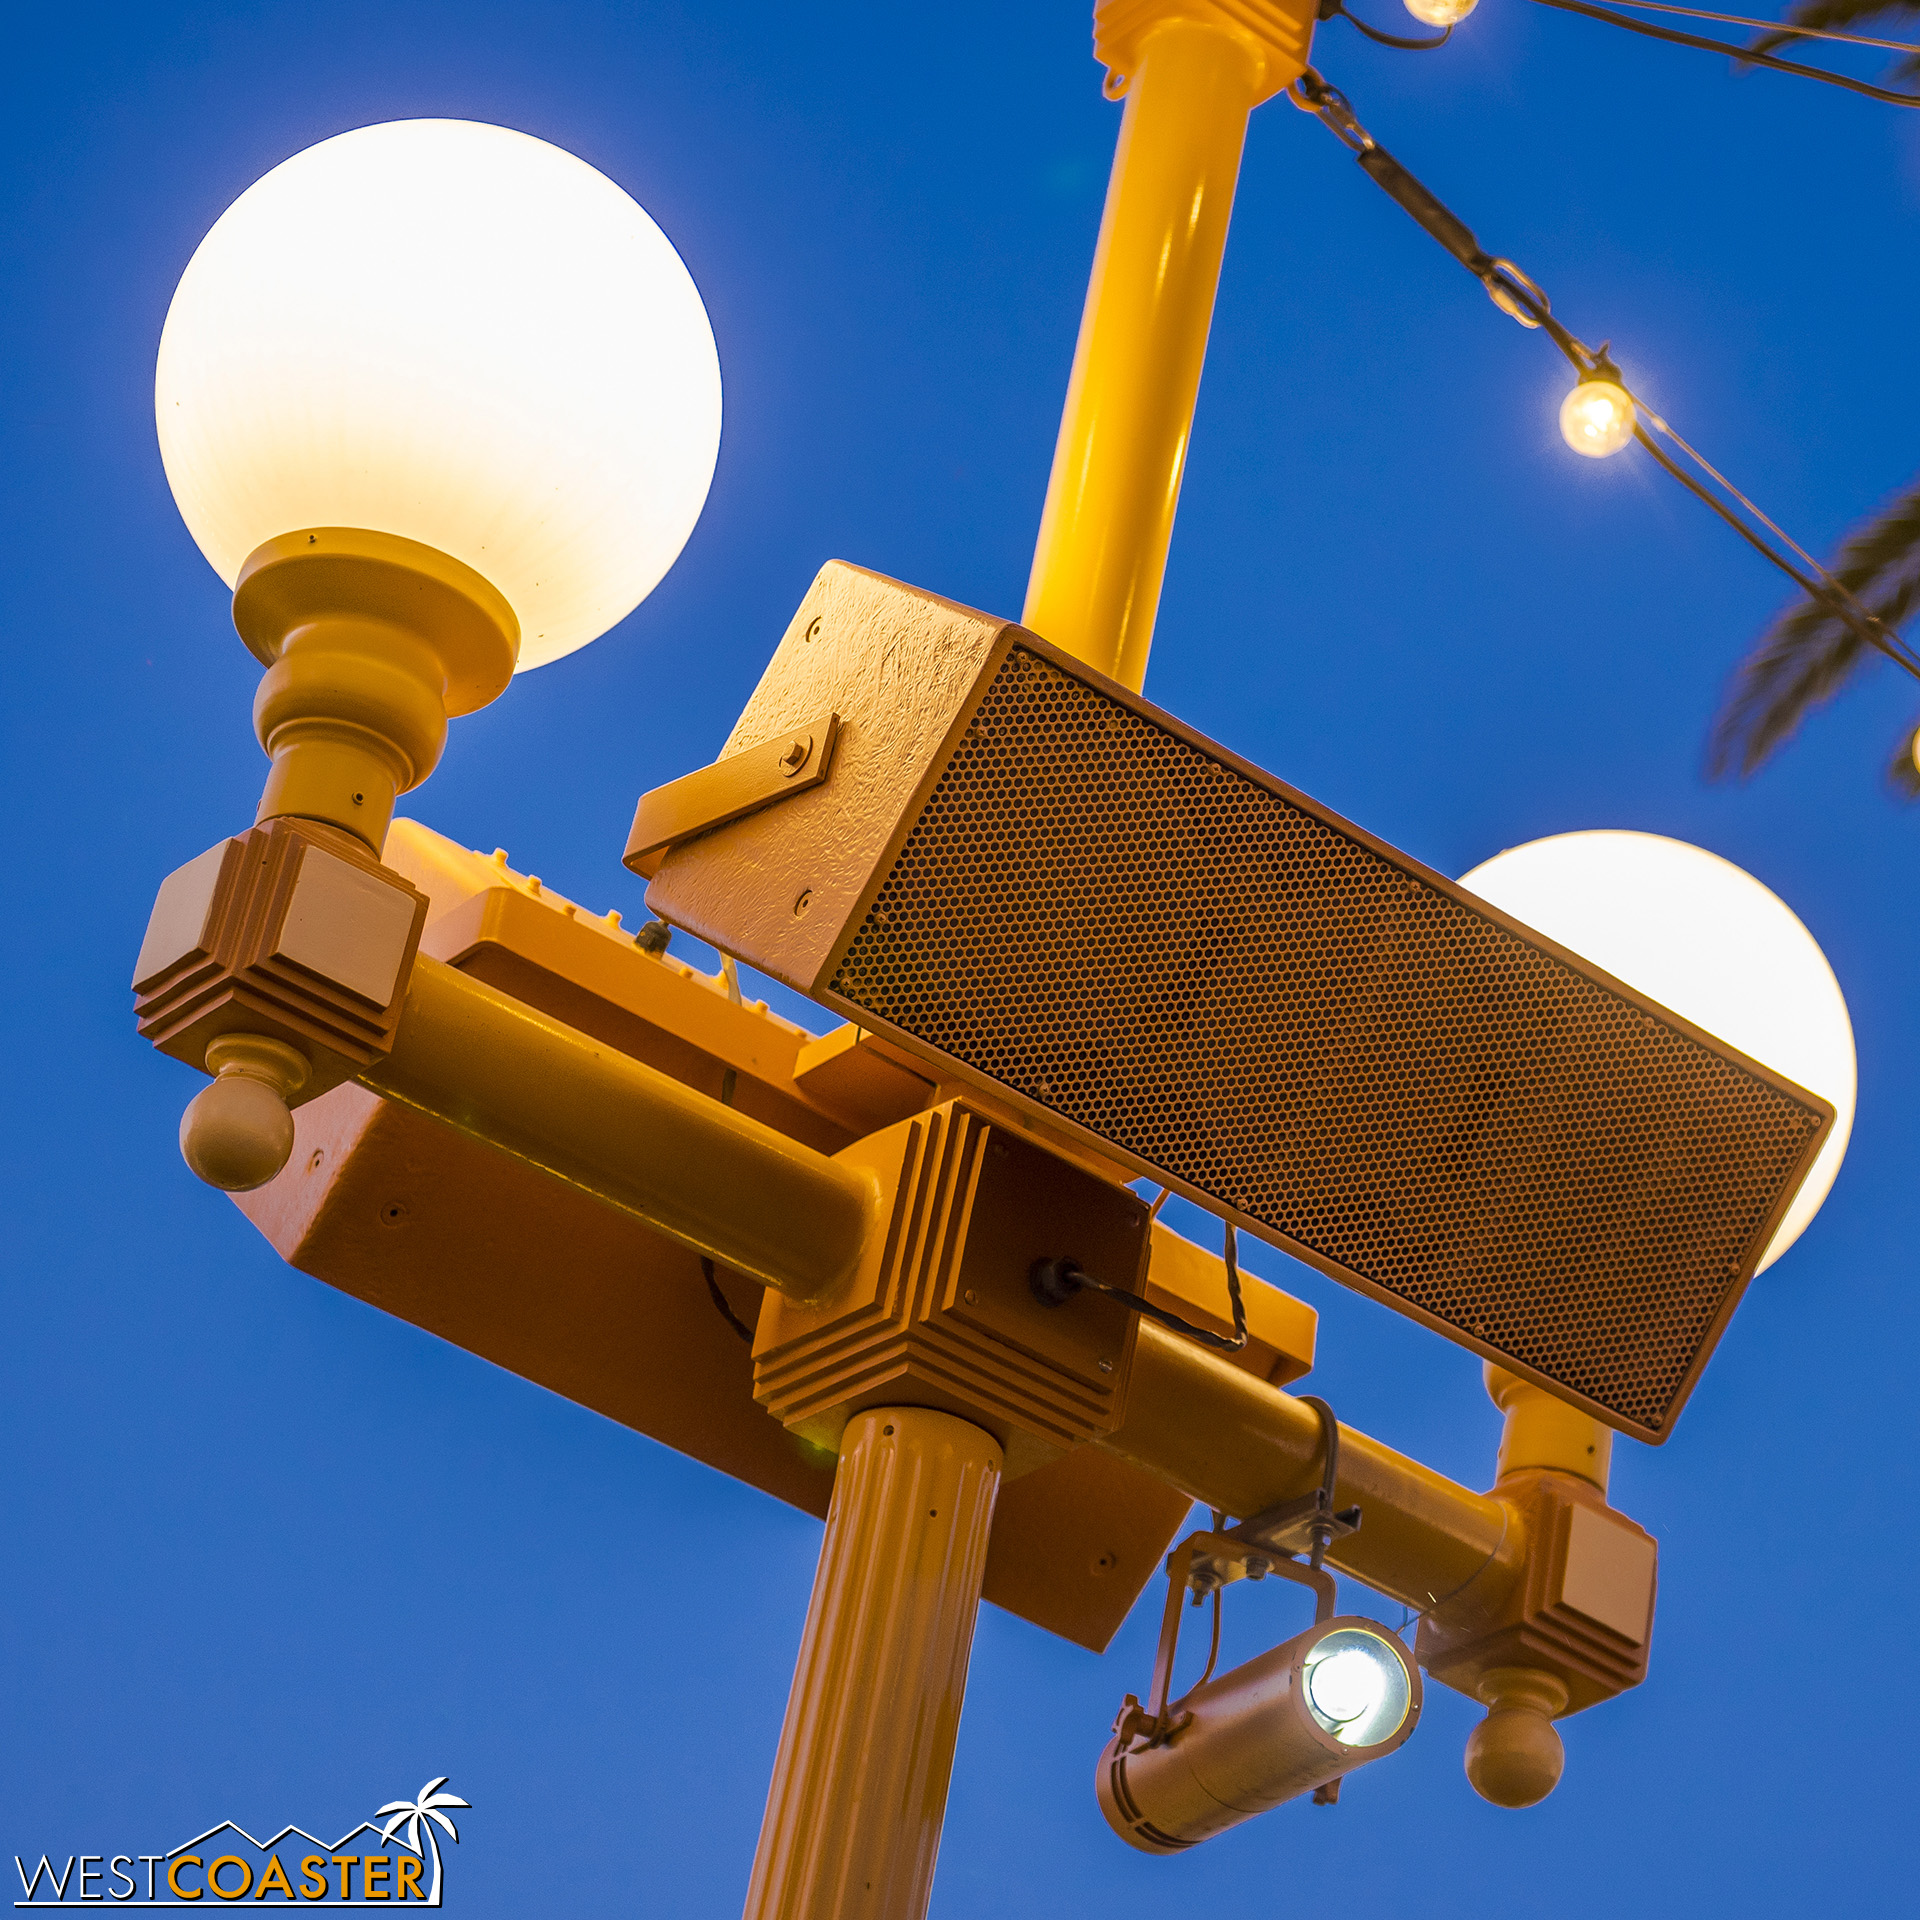 It projects what looks to be a daylight or neutral LED light toward the figures.  But it doesn't really meet the warm vibrance of the Pier.